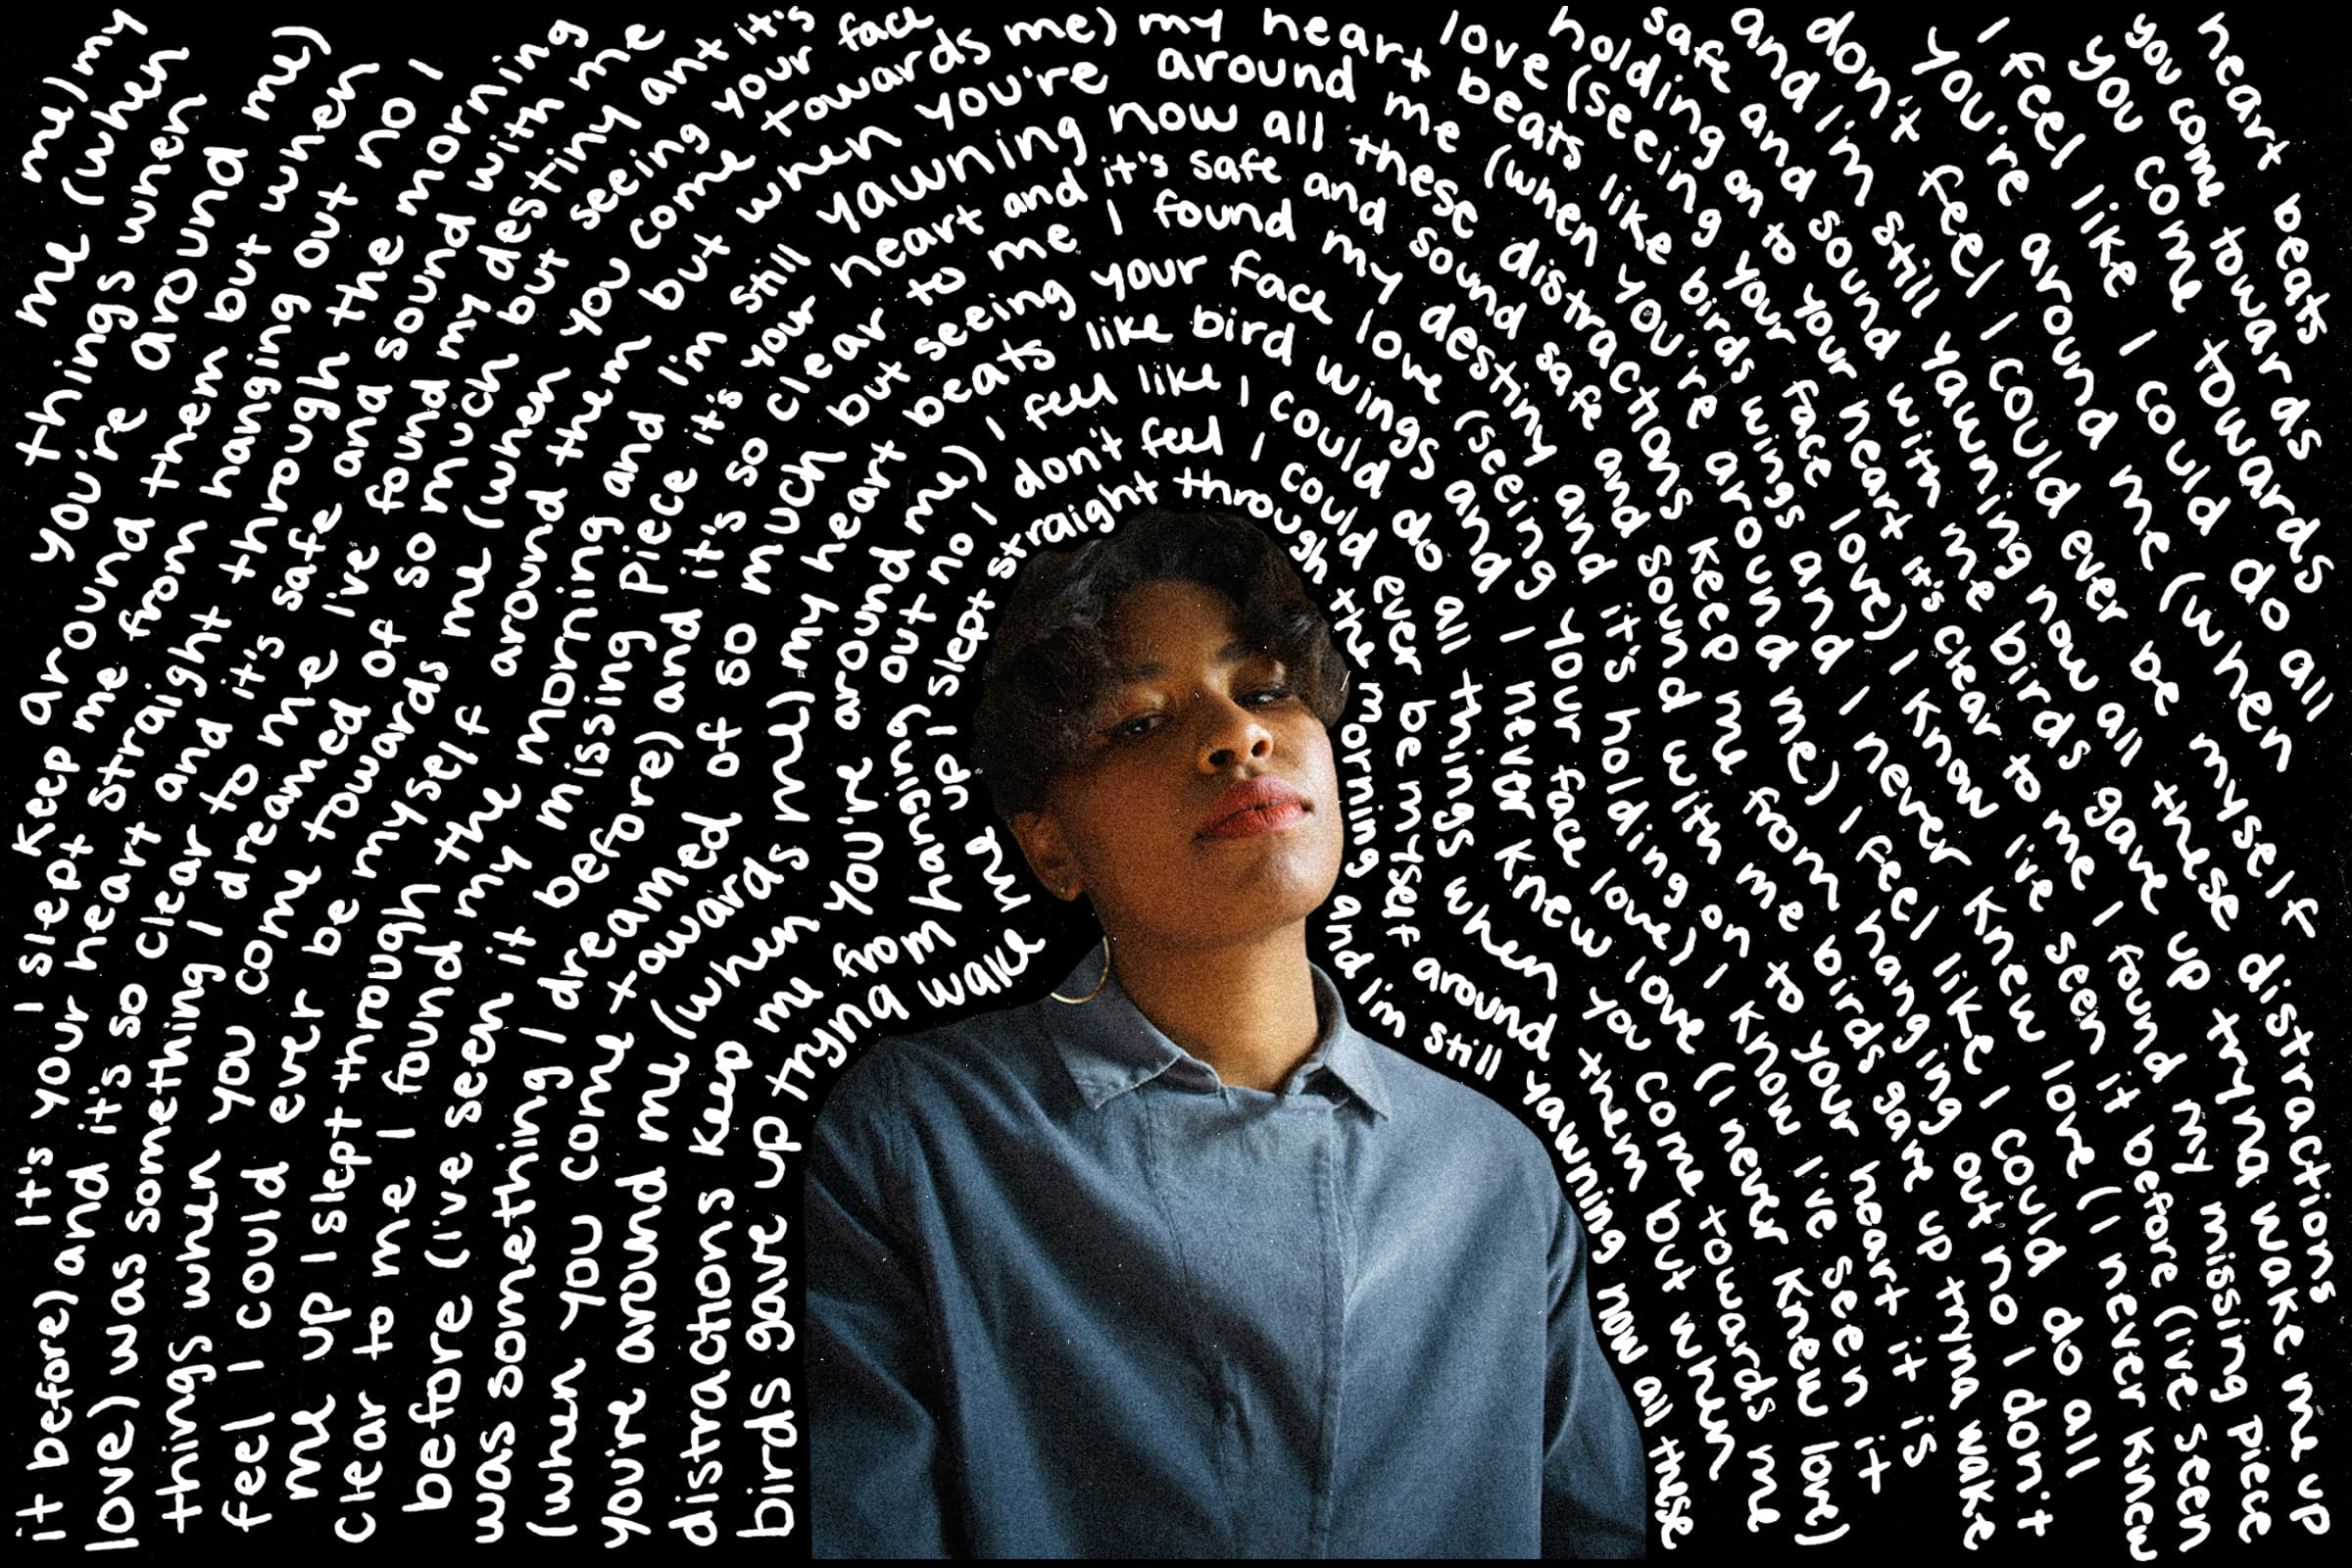 A collage of photos featuring Orion Sun with lyrics from one of her songs written around her.